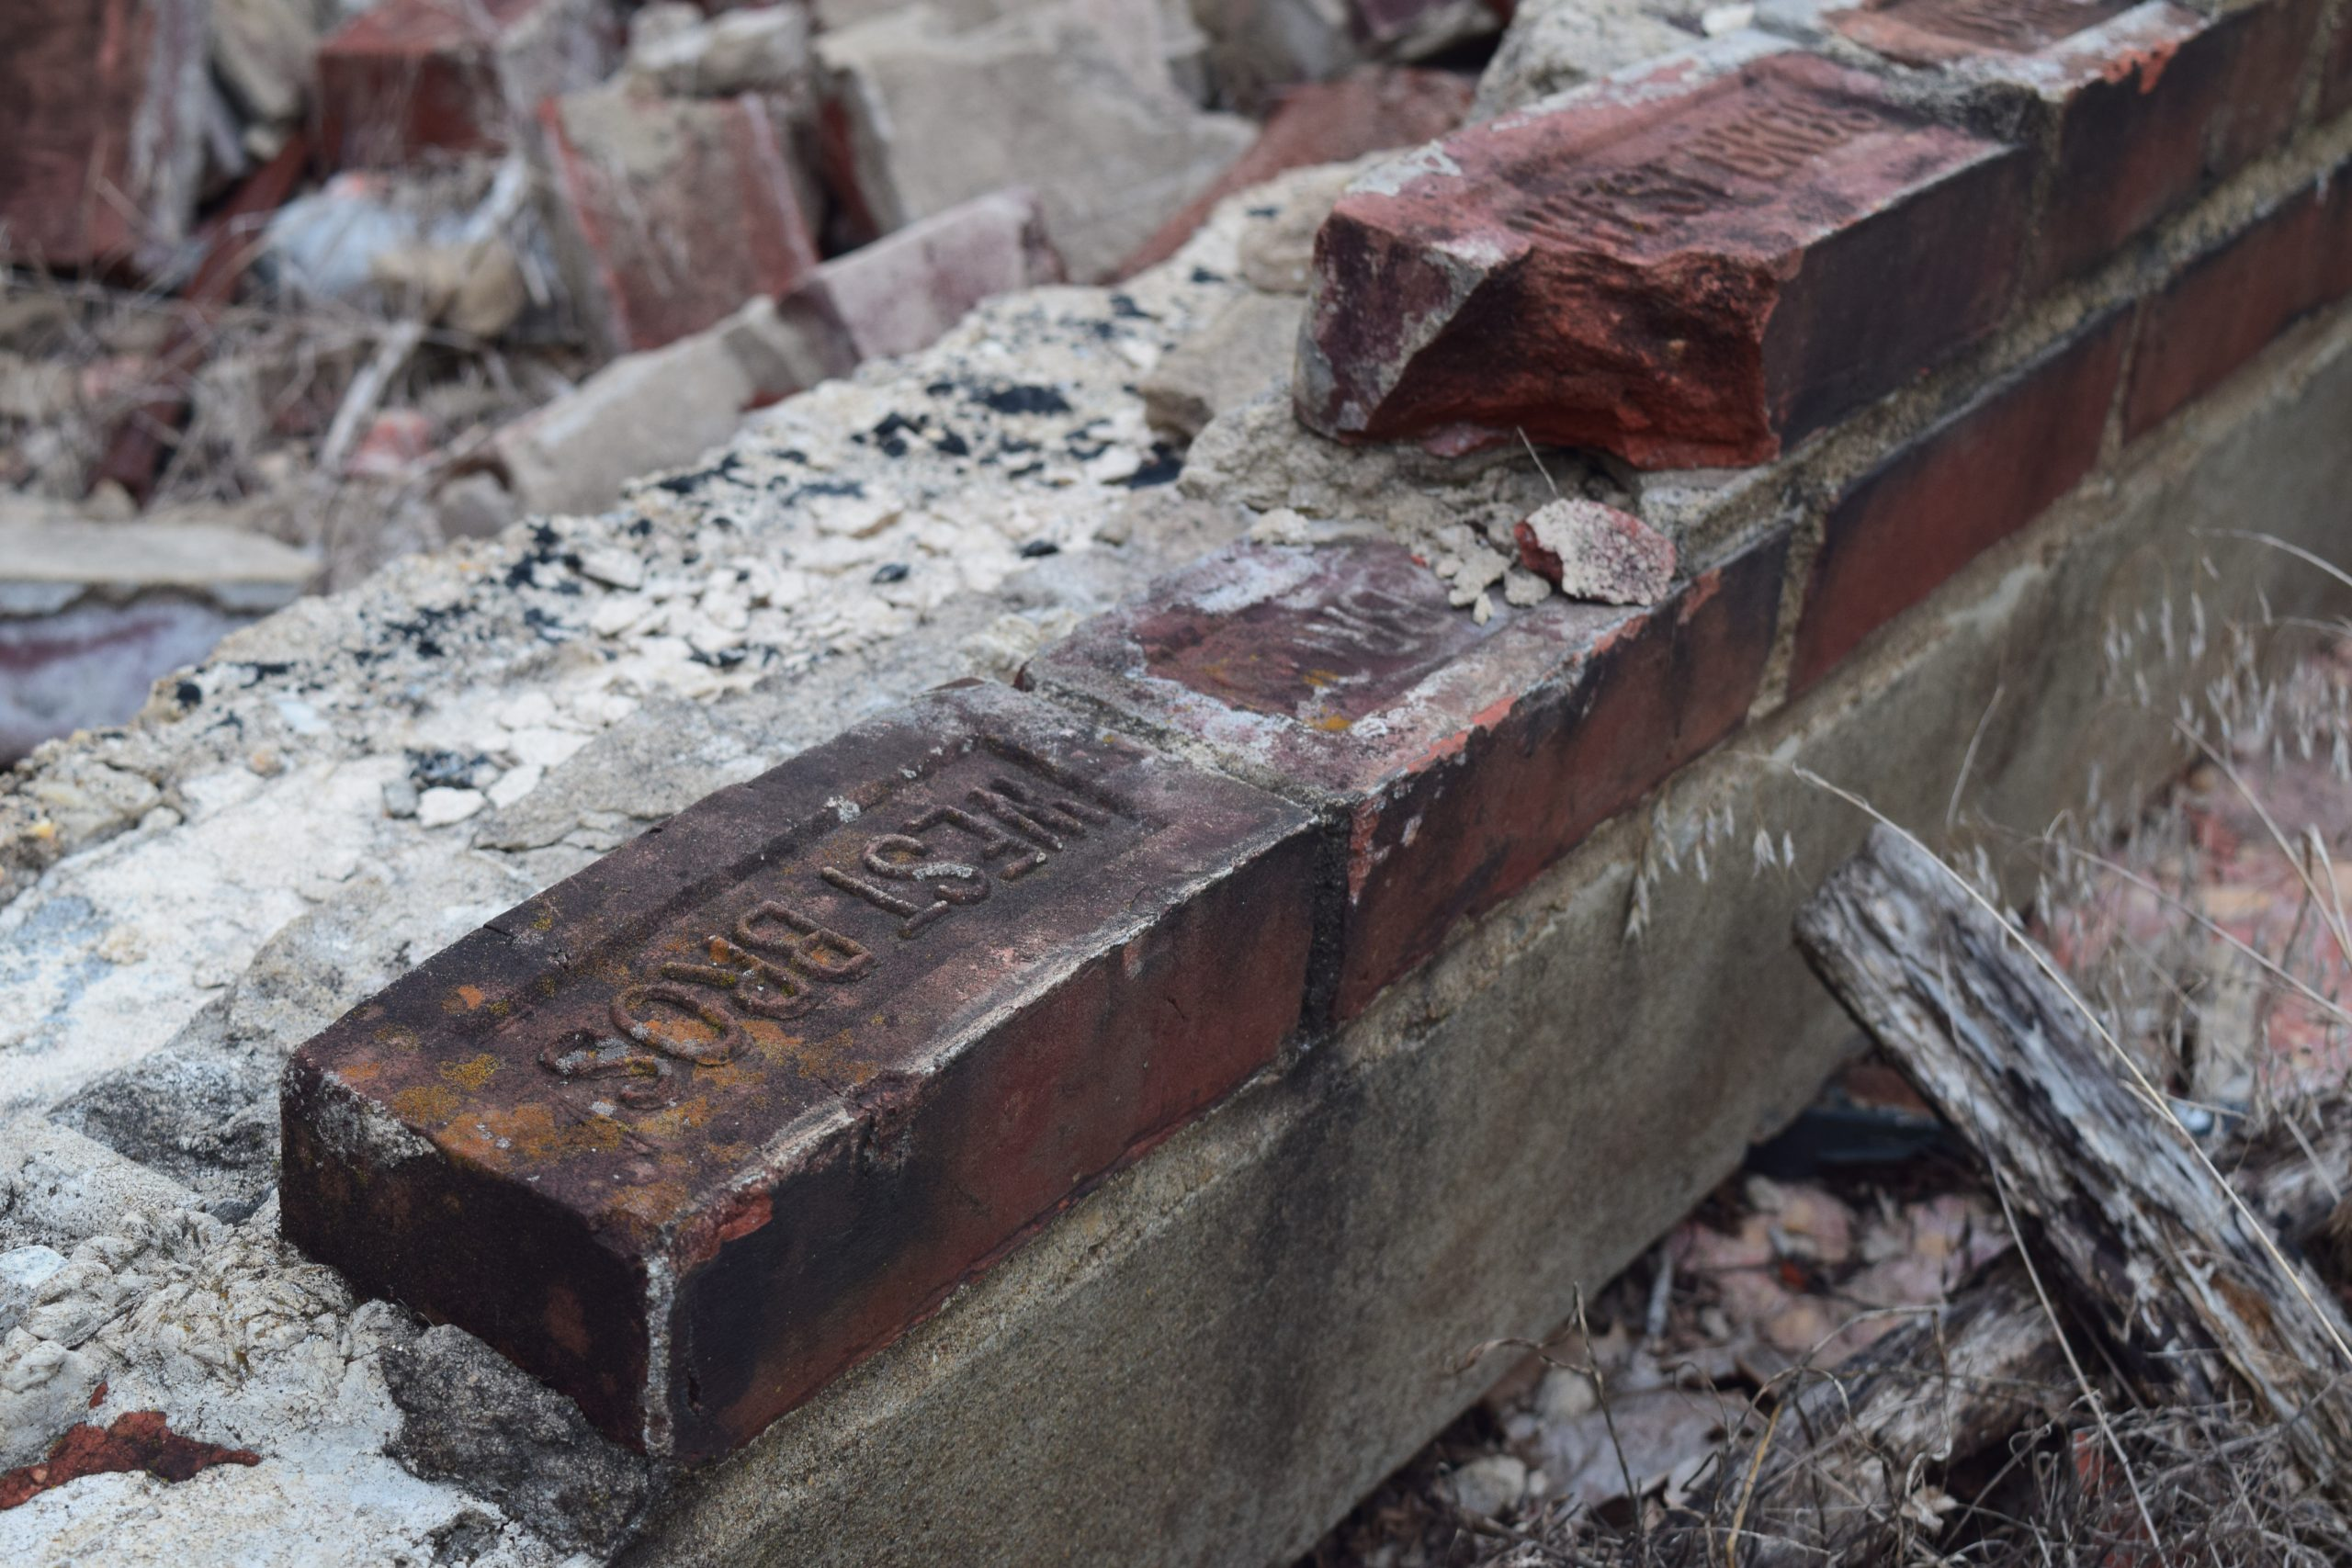 """Bricks from a building at the Glenn Dale Hospital campus. The bricks read """"West Bros."""" The Glenn Dale Tuberculosis Hospital and Sanitarium was founded in 1934, but closed in 1981. It was selected as a Preservation Maryland Six-to-Fix site in 2015."""